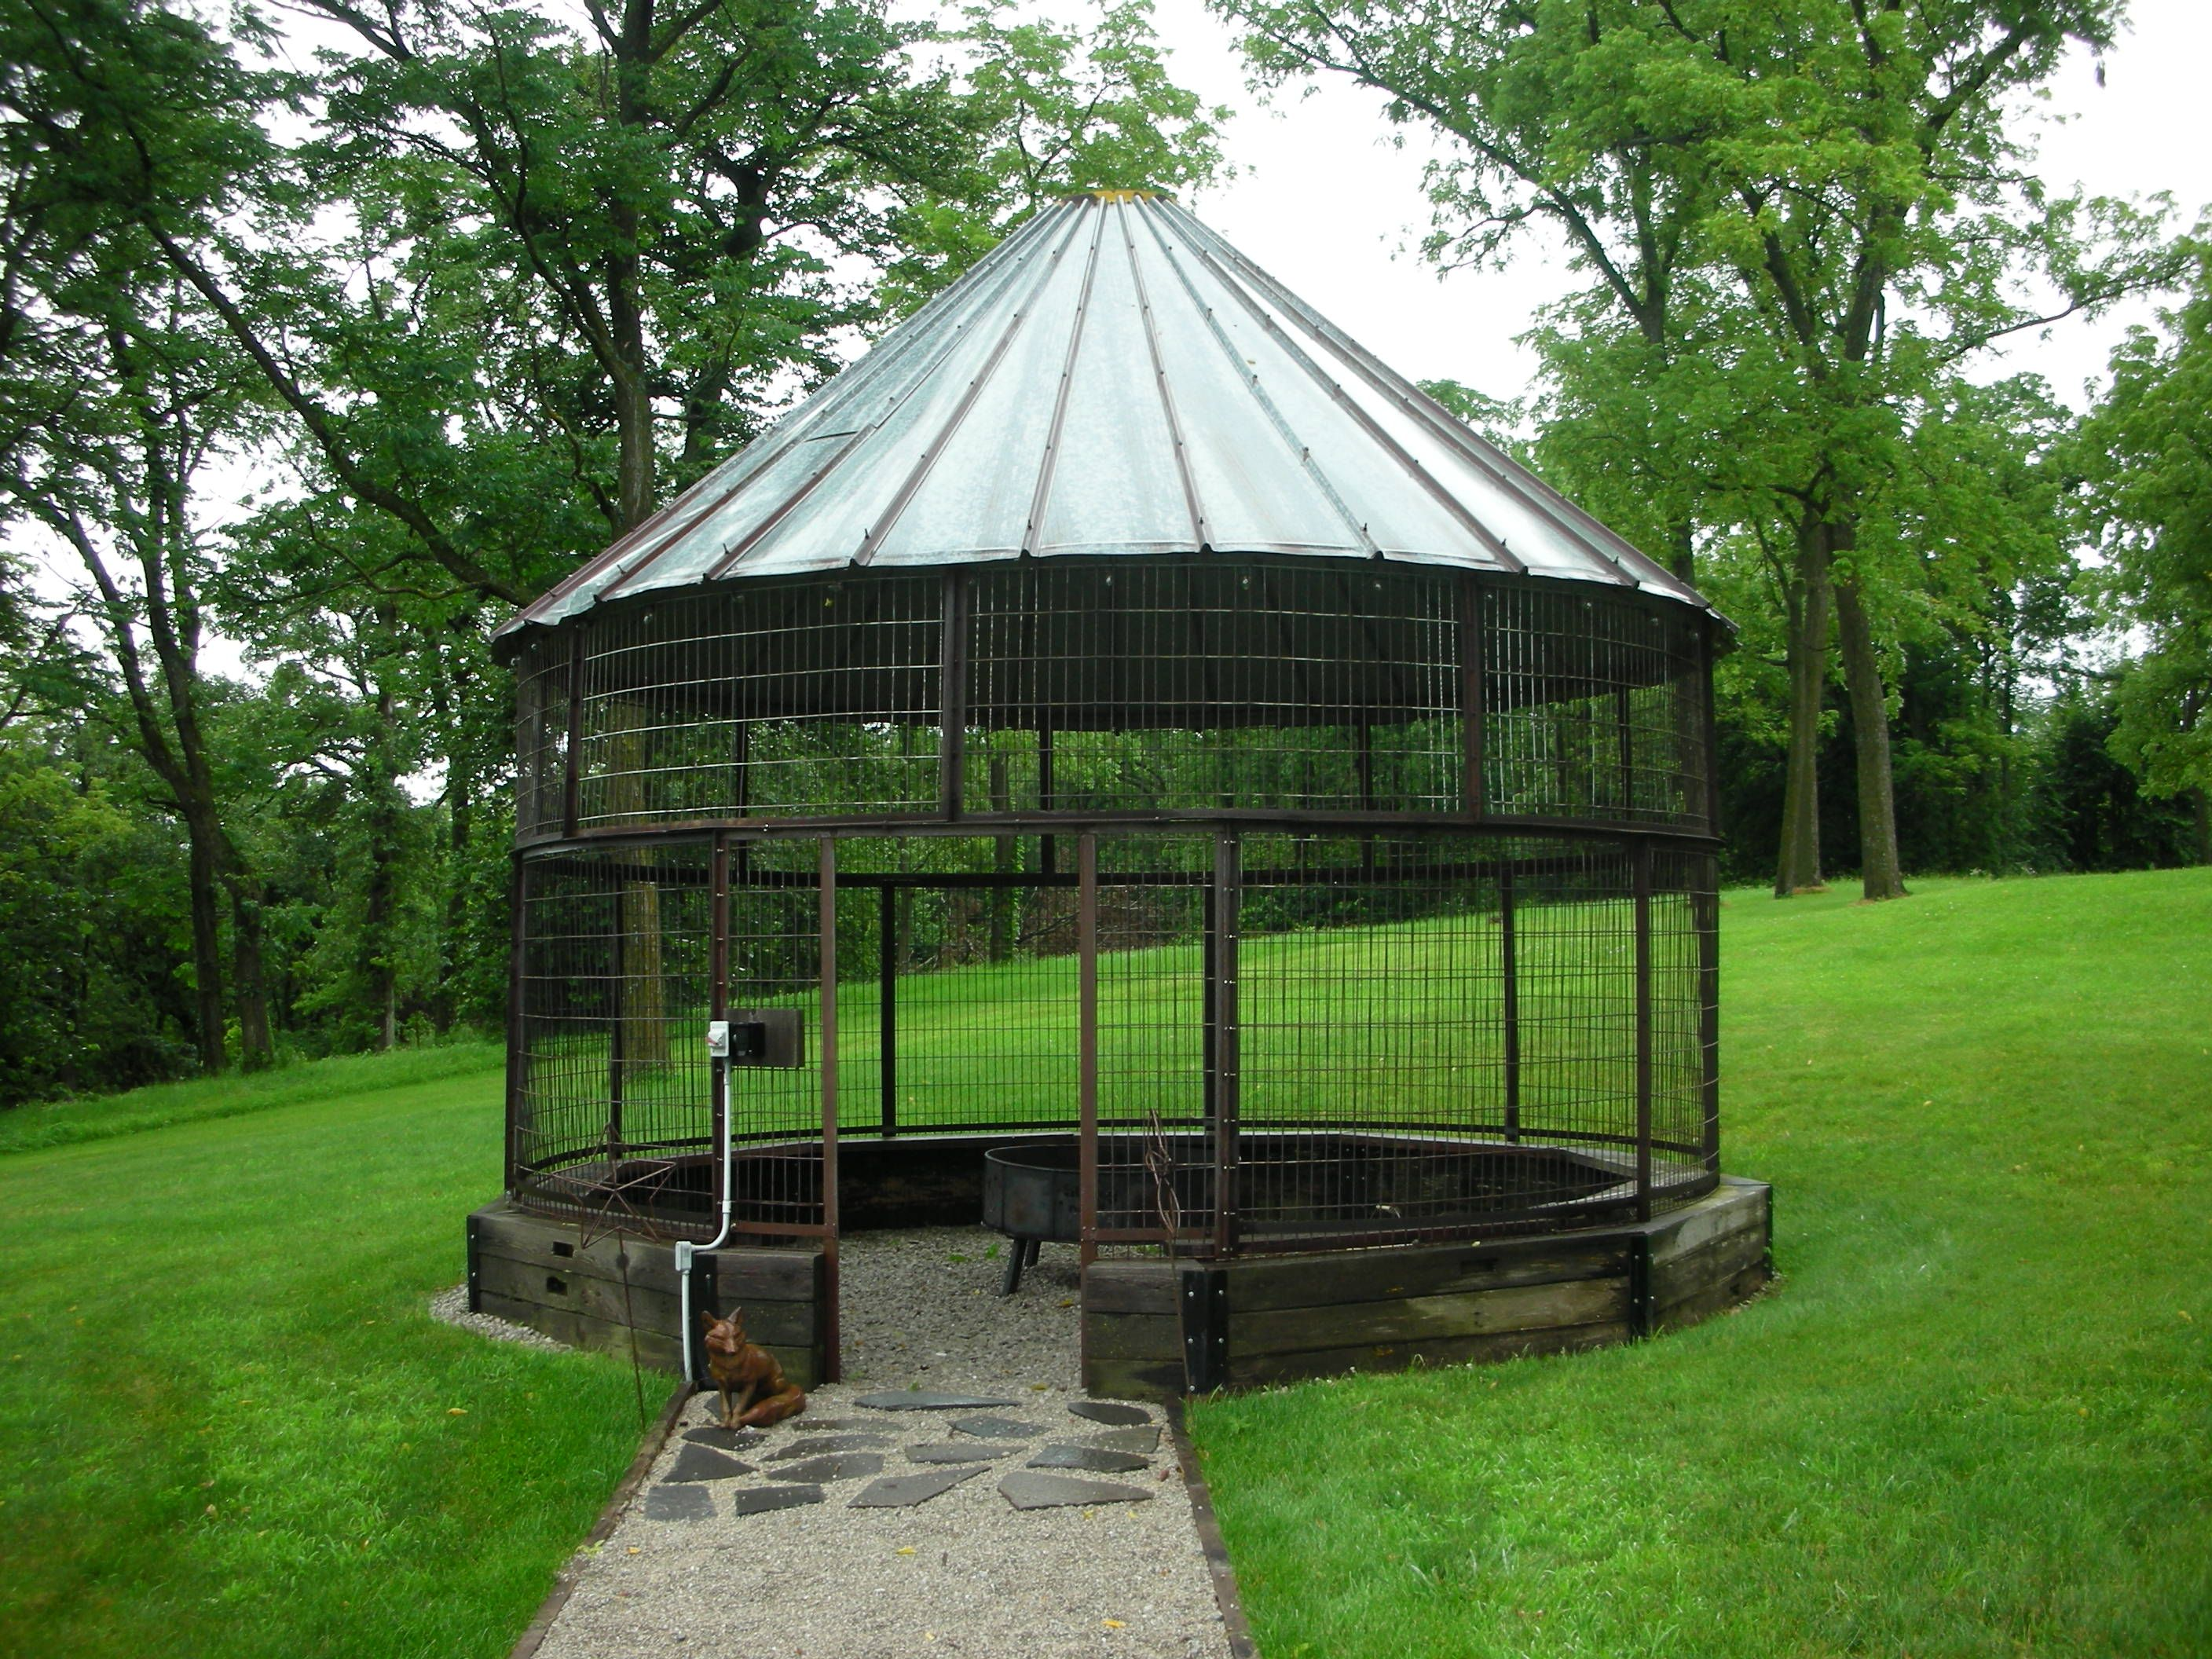 Corn Crib Recycled Into A Gazebo